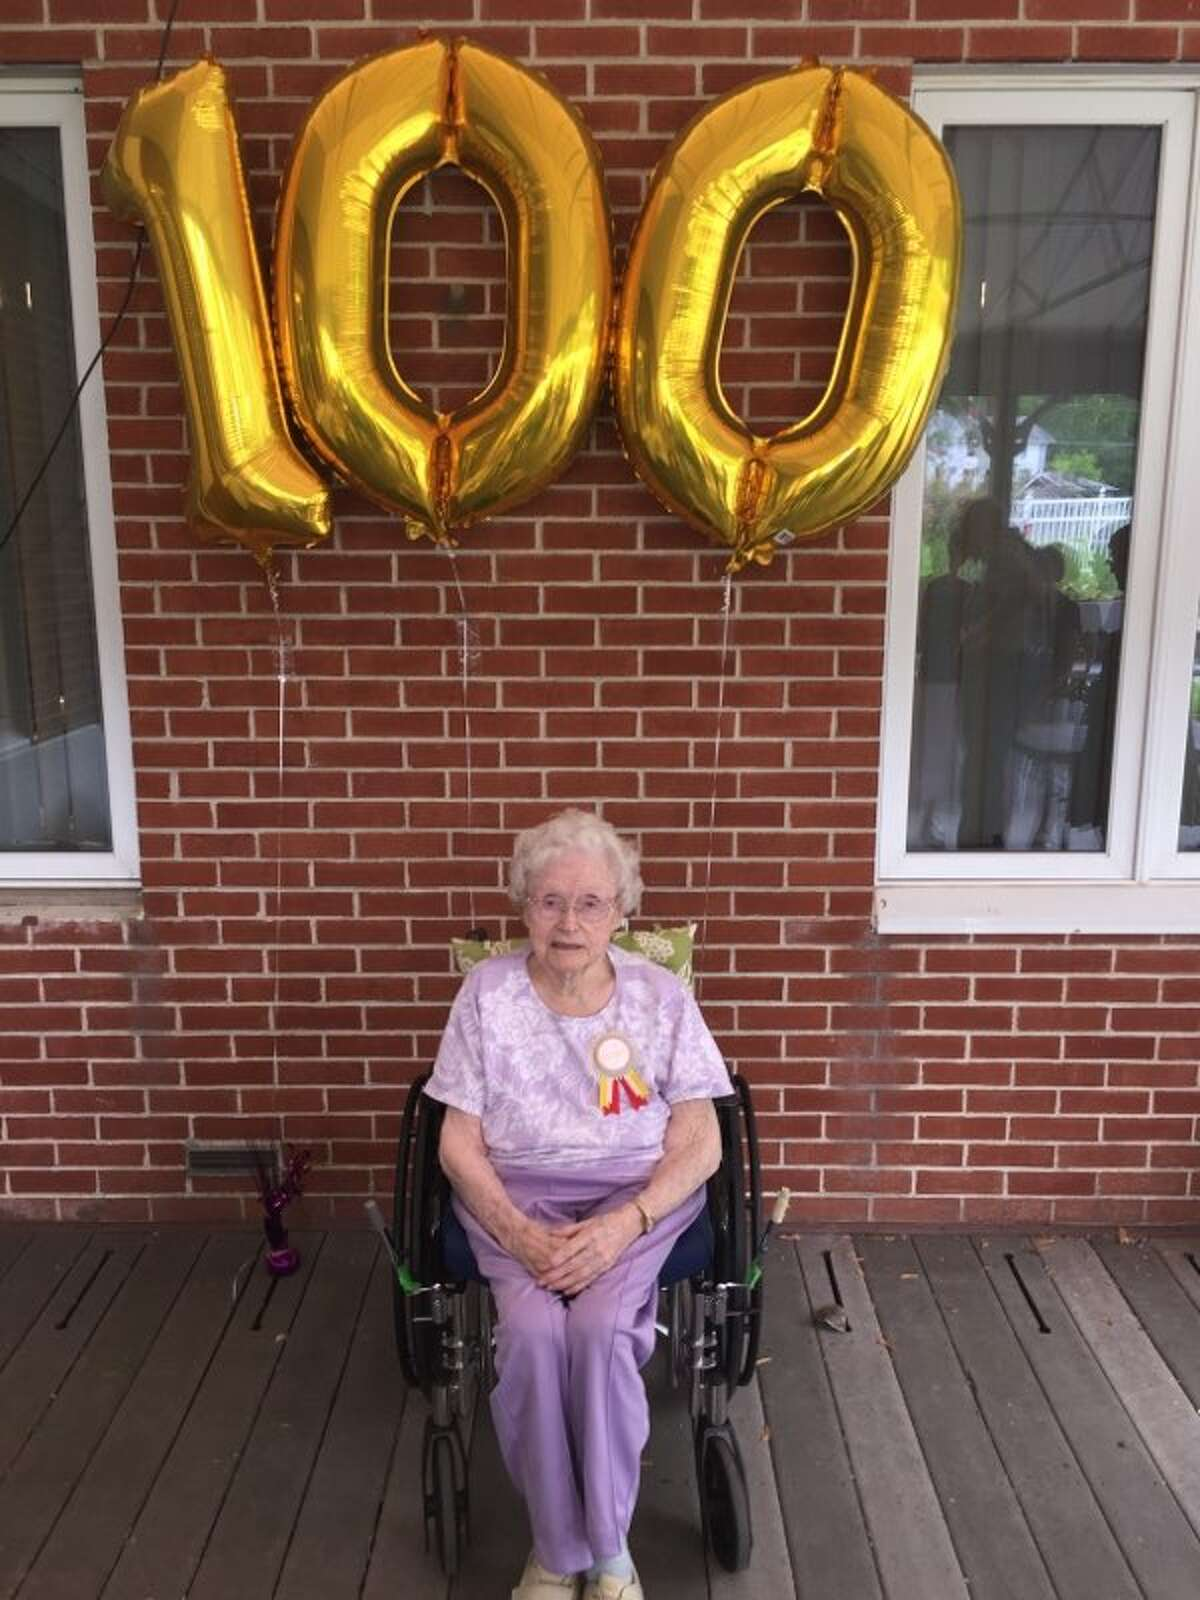 Dorothy Andrew Baker celebrated her 100th birthday recently at The Center for Nursing and Rehabilitation at Hoosick Falls. Dorothy has been a longtime resident of the Hoosick Falls area and moved to the center in 2018. Along with local relatives and friends, several family members traveled from Connecticut, Maine, Massachusetts and New Hampshire. Music has always been an important part of Dorothy's life, so as a surprise to her, some of her grandchildren and great grandchildren presented a recital. Solos and duets were played on the keyboard, guitar, trumpet, cello and violin, according to the center.